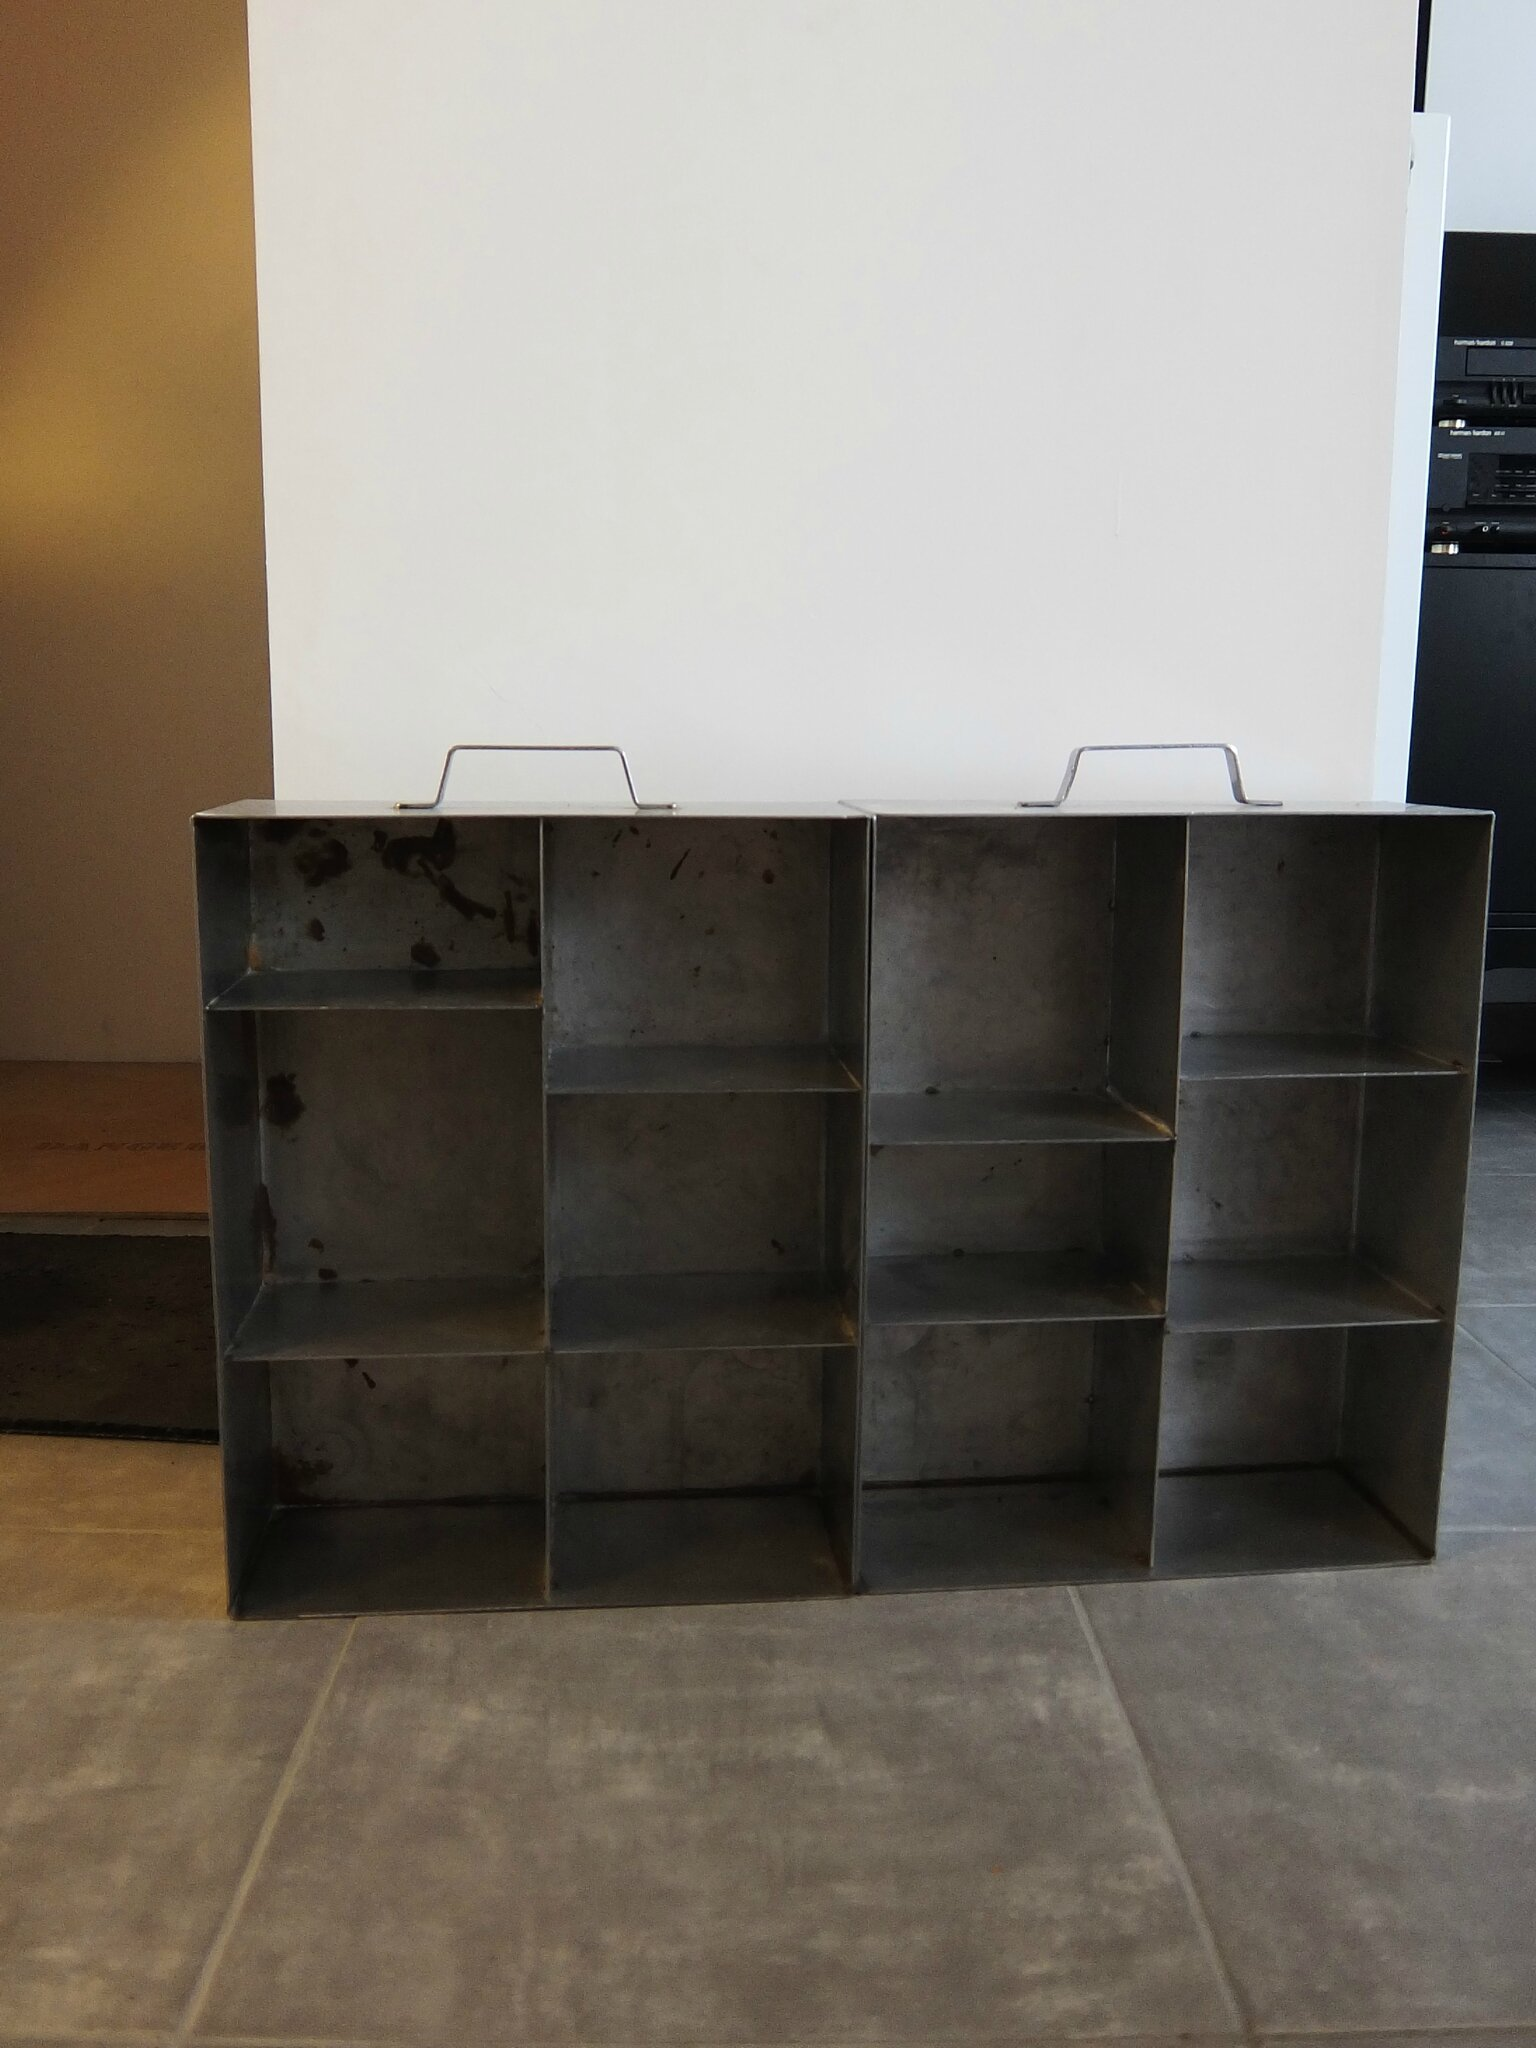 transformer des tiroirs inox en tag re indus diy relooking mobilier cr er ma d co. Black Bedroom Furniture Sets. Home Design Ideas